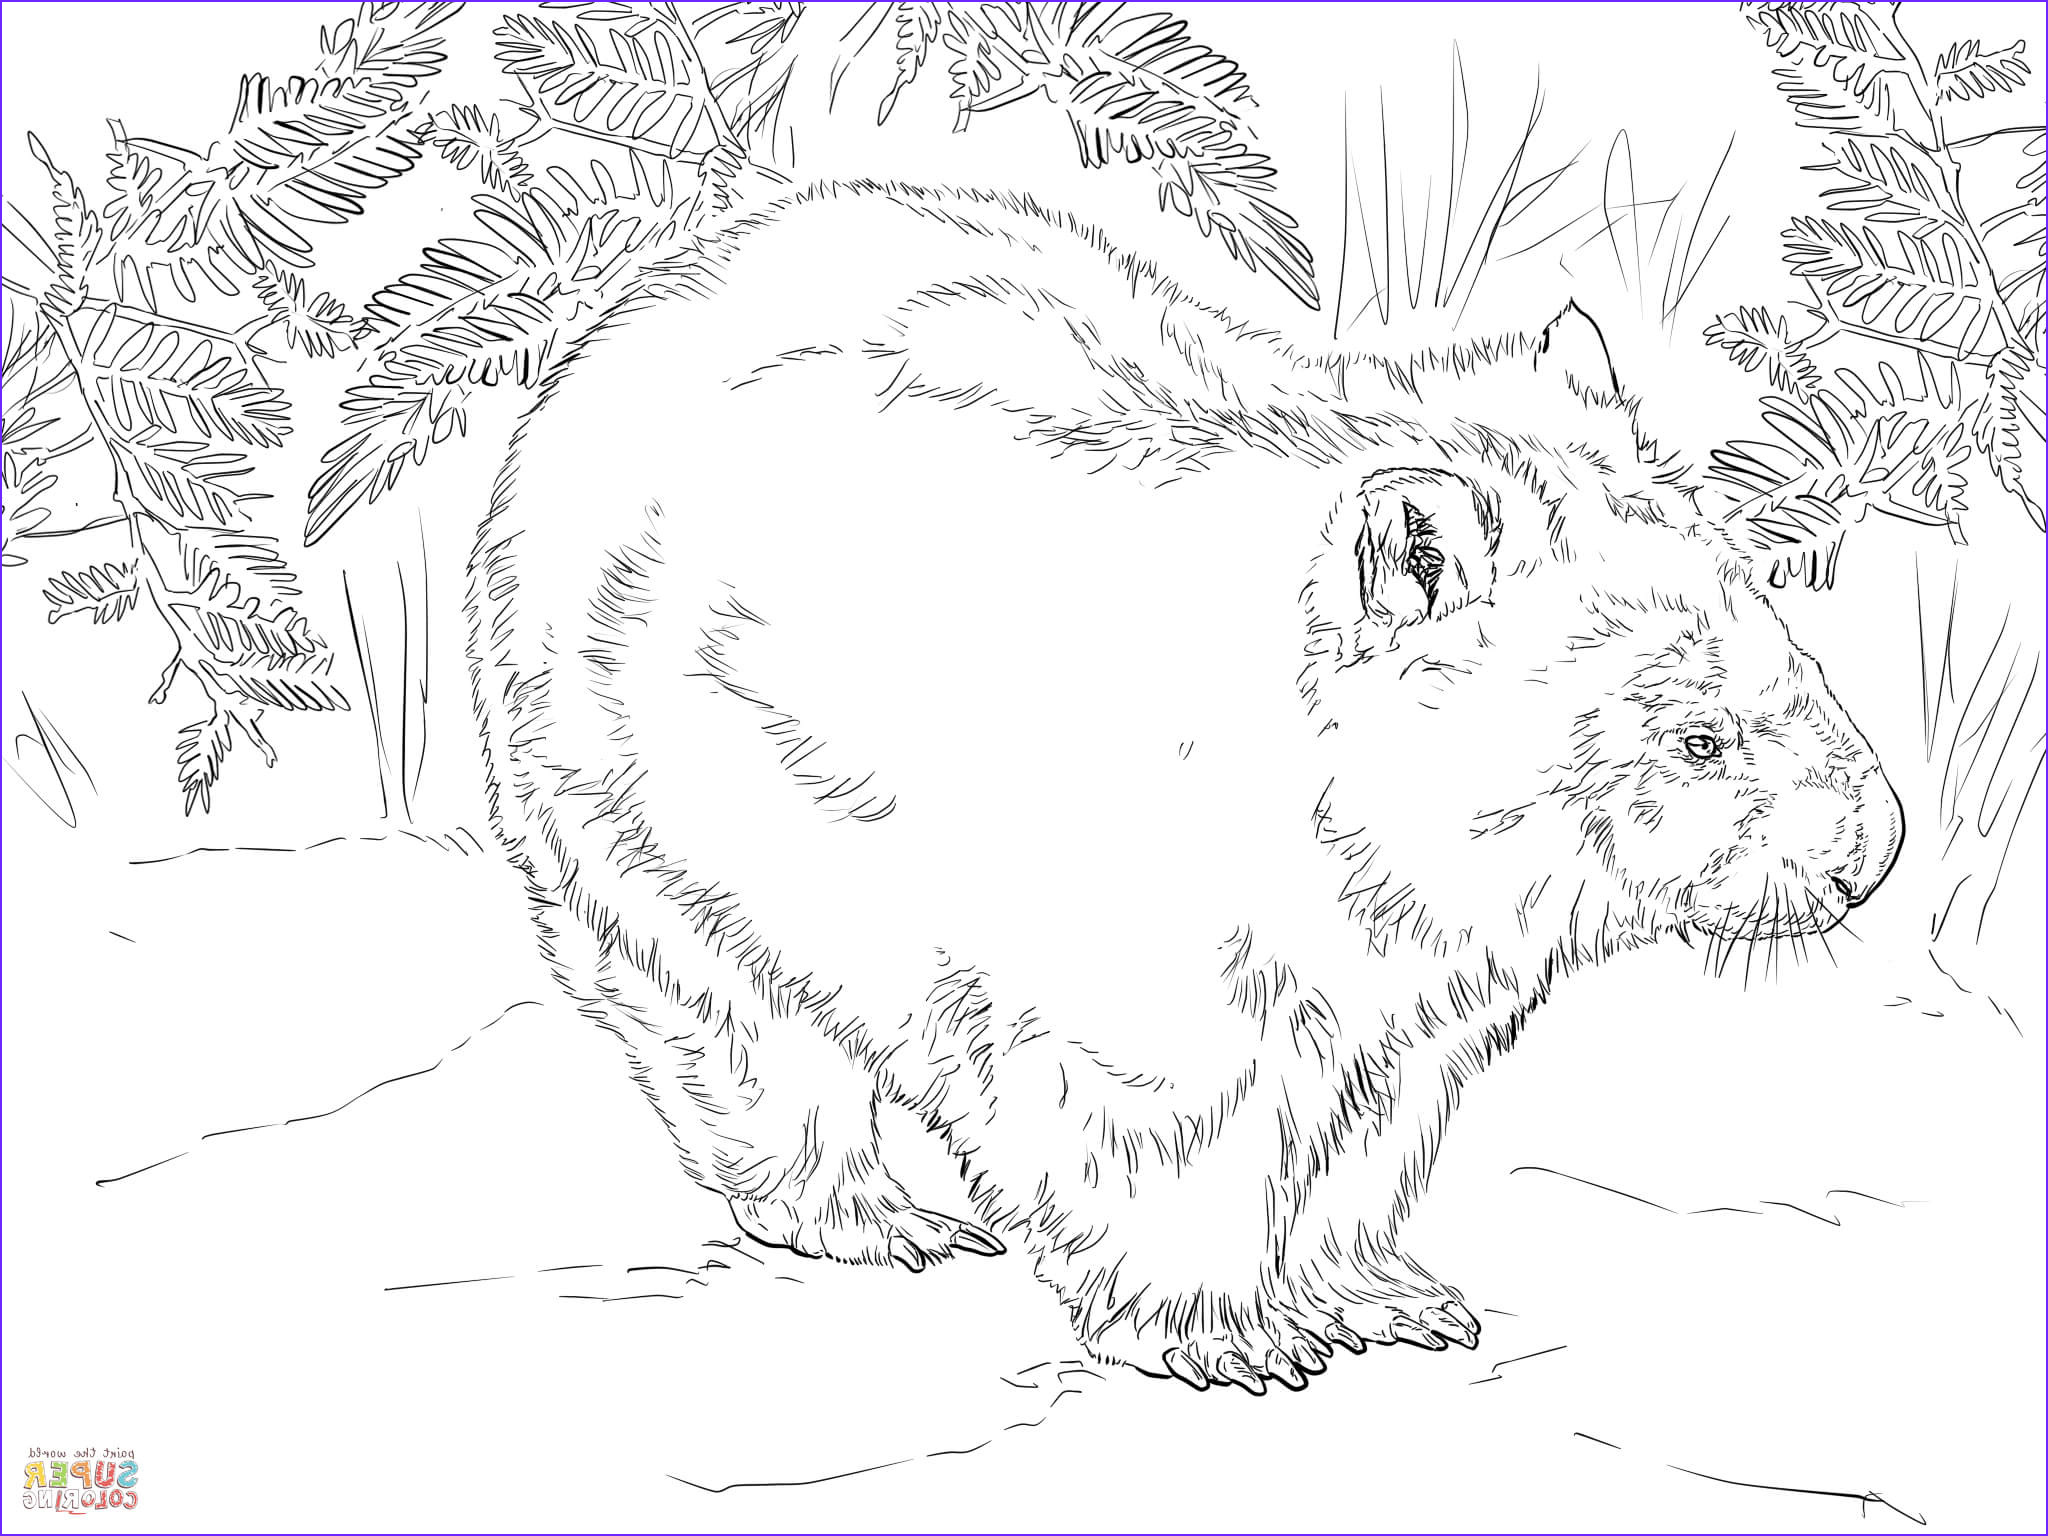 Wombat Coloring Page Elegant Image Wombat From Australia Coloring Page